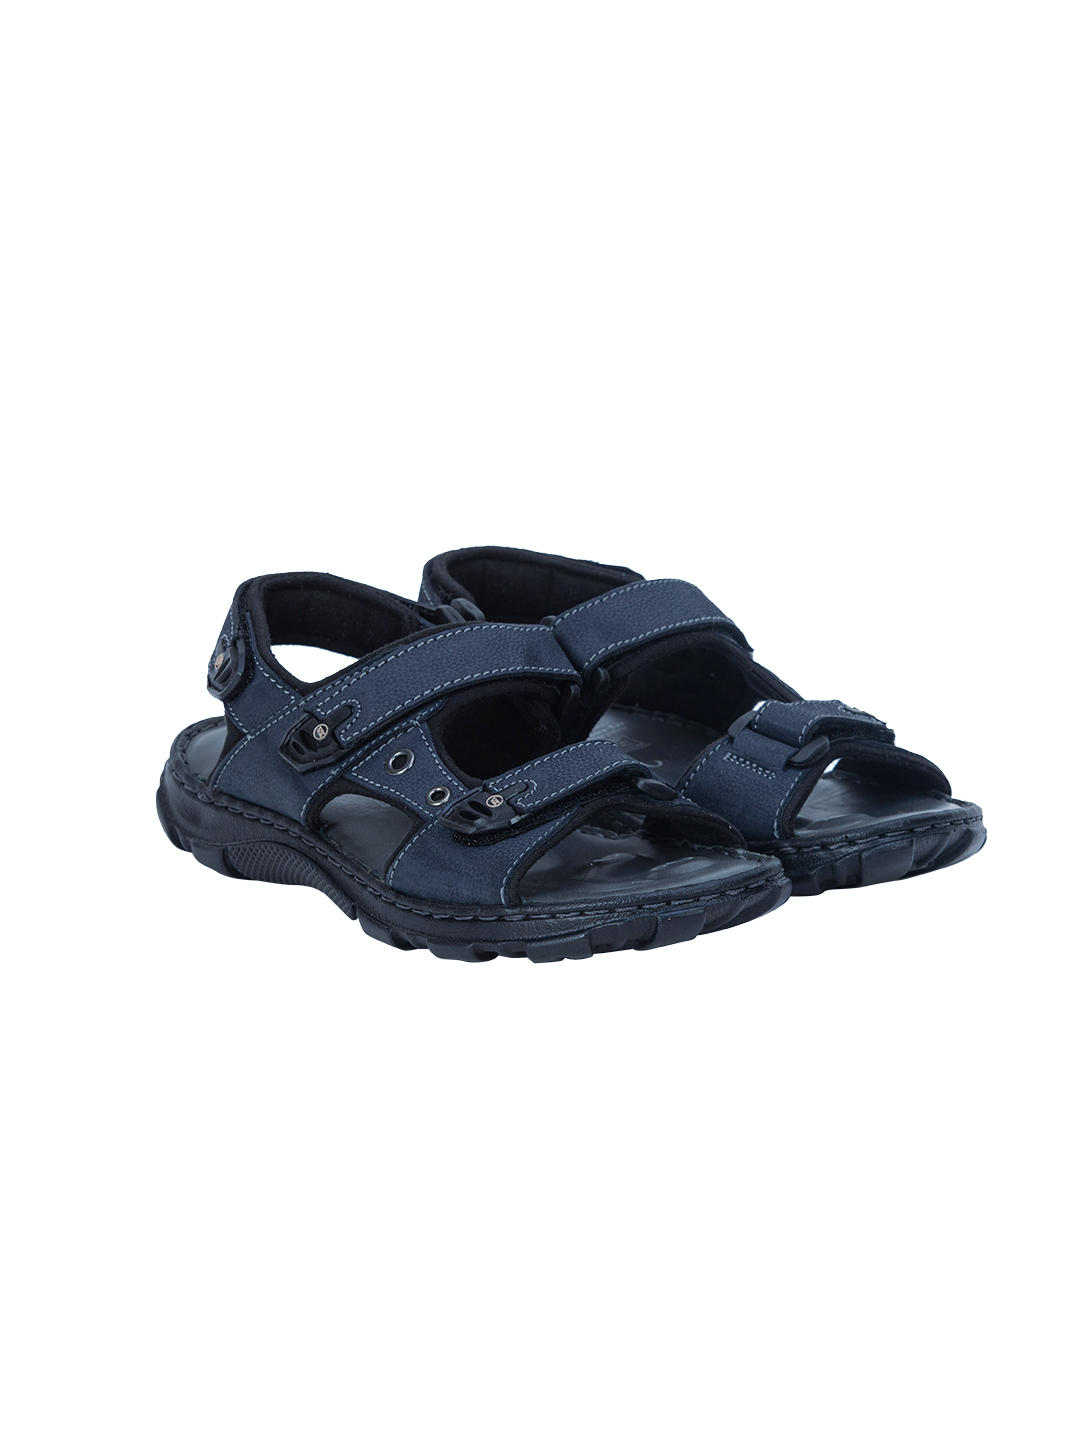 Buy VON WELLX GERMANY COMFORT BLUE KOZAN SANDALS In Delhi